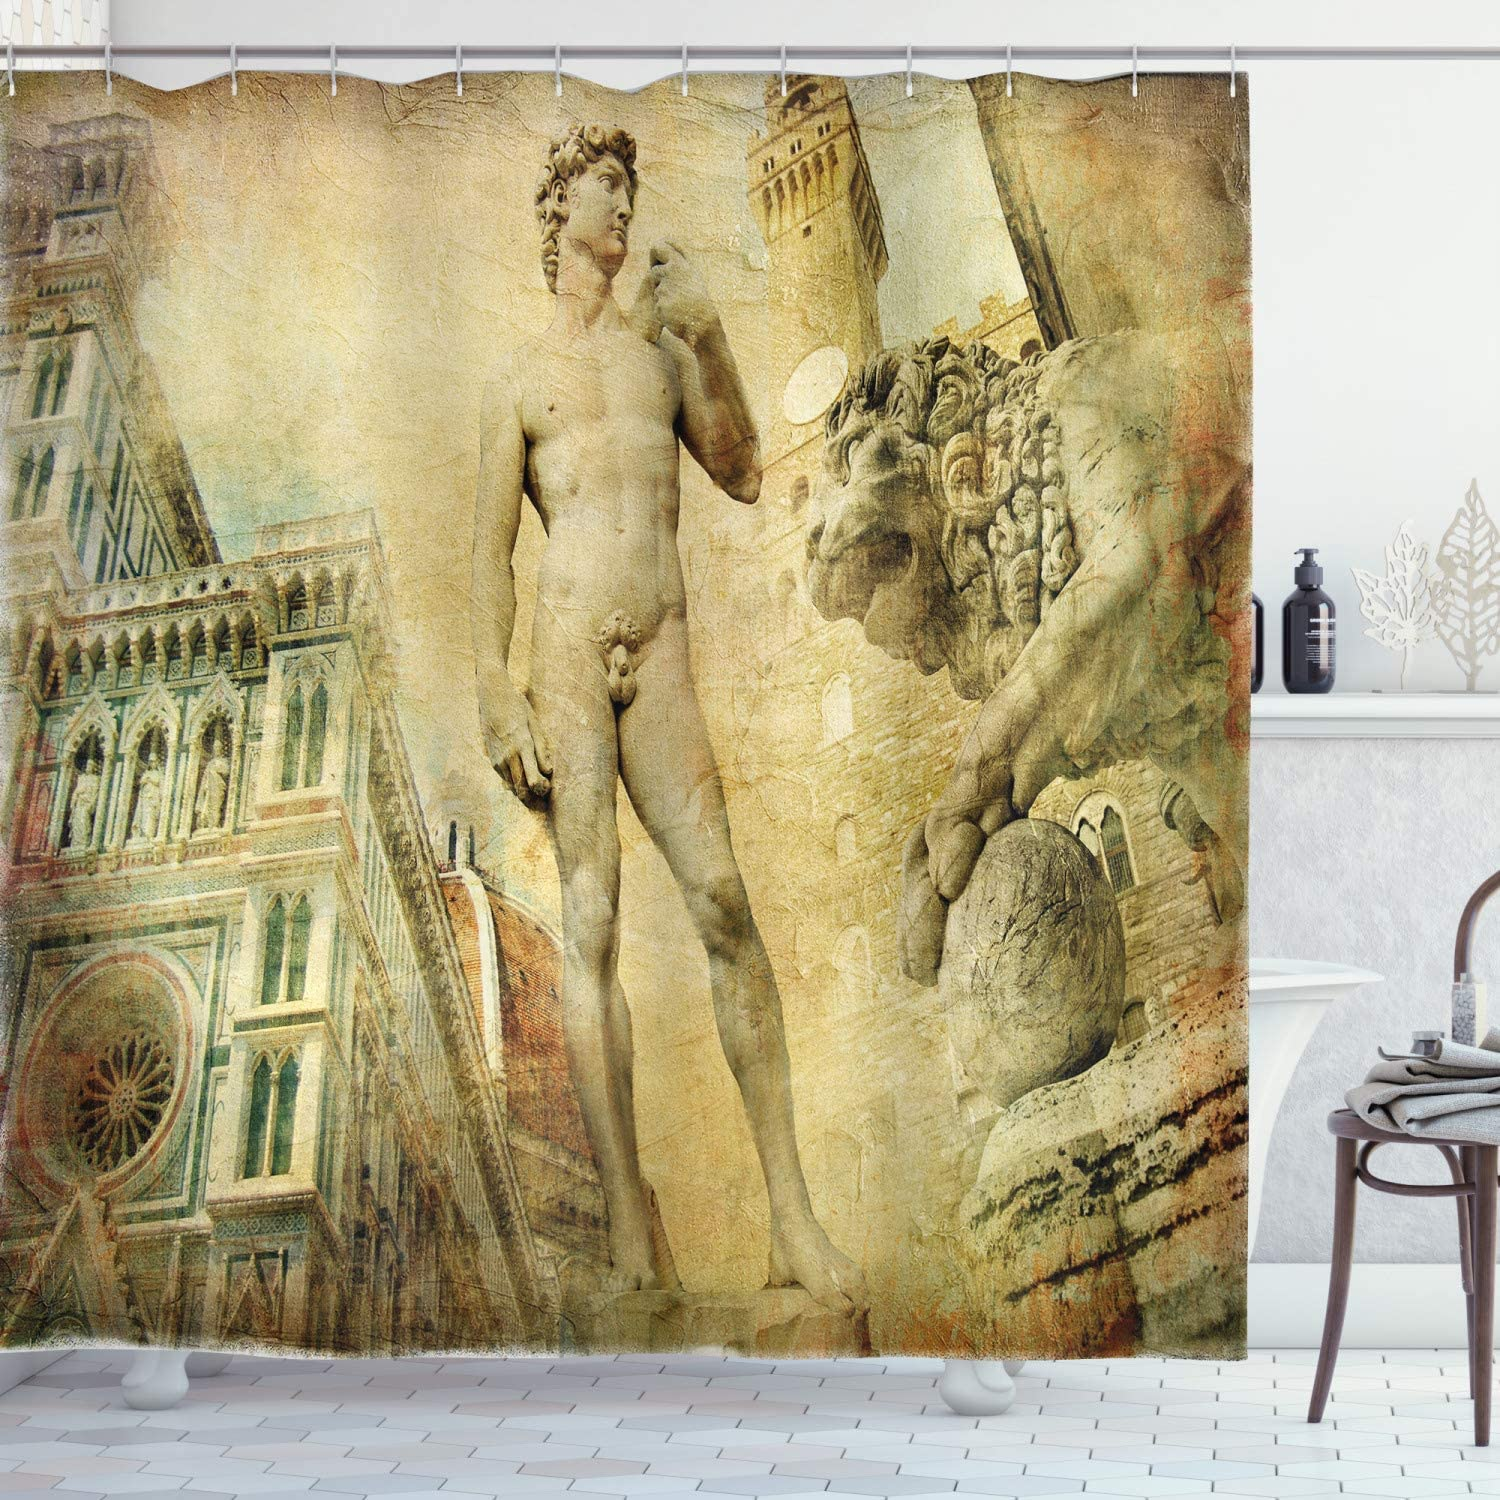 Ambesonne Italy Shower Curtain, Florence Art Collage Michelangelo David Renaissance, Cloth Fabric Bathroom Decor Set with Hooks, 70